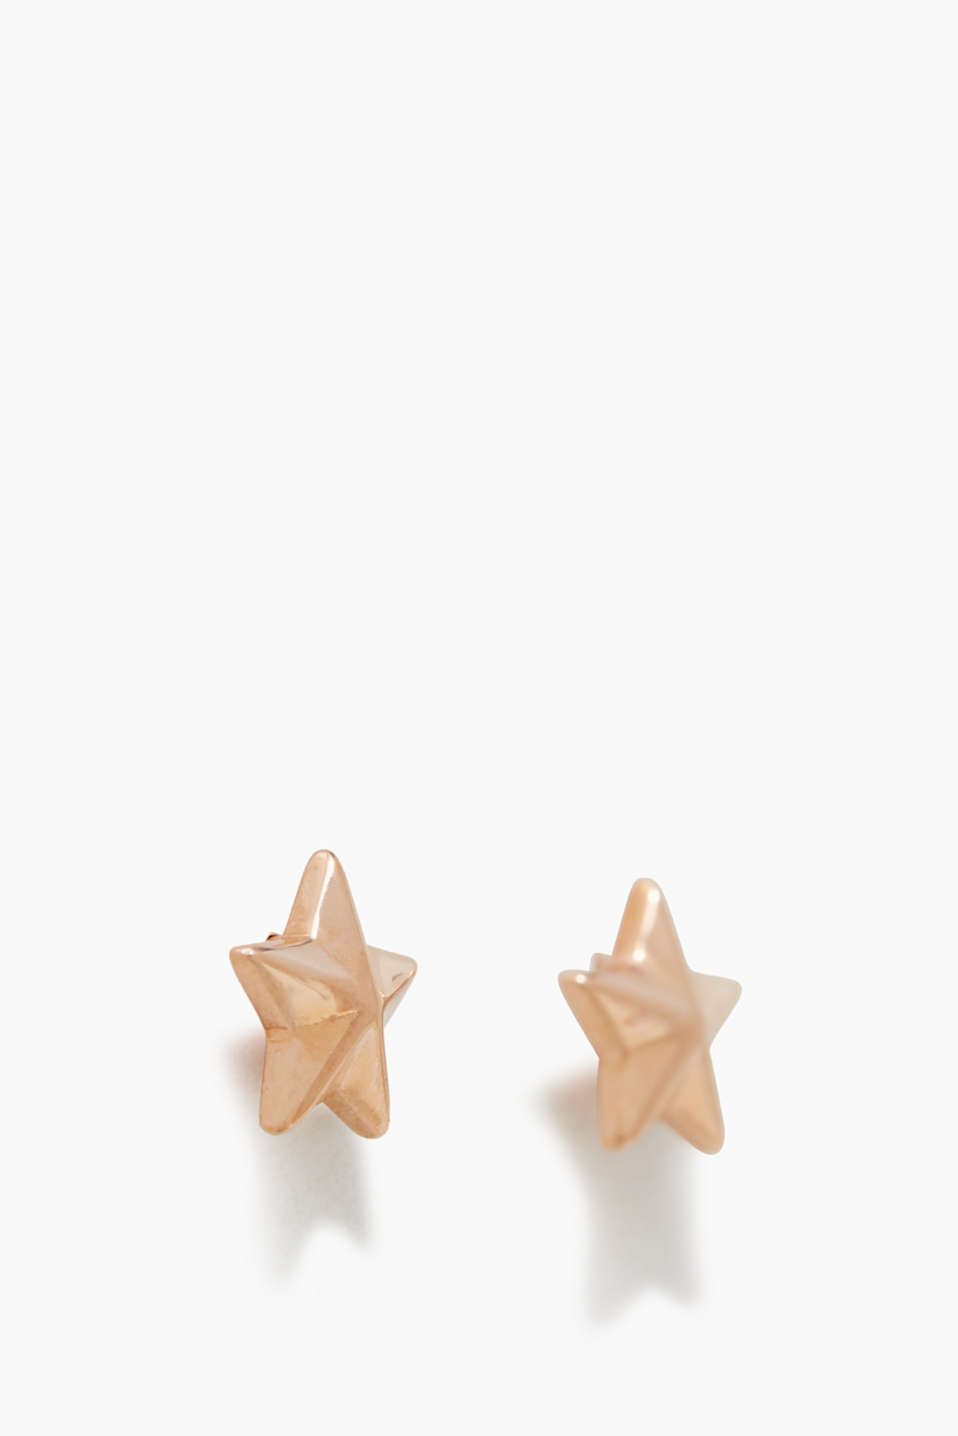 Star-shaped stud earrings in sterling silver